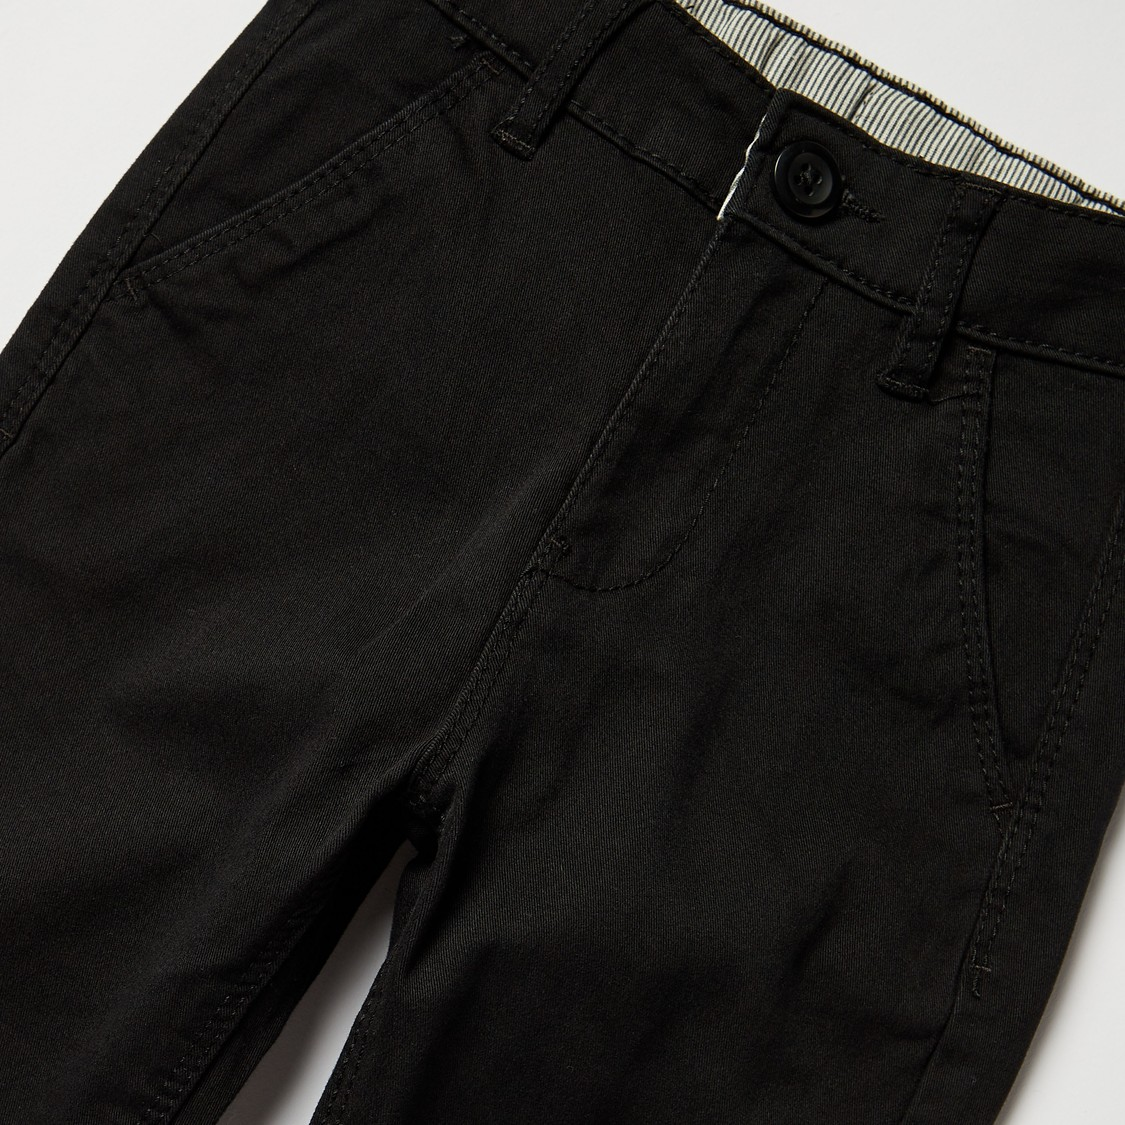 Solid Full Length Chinos with Pockets